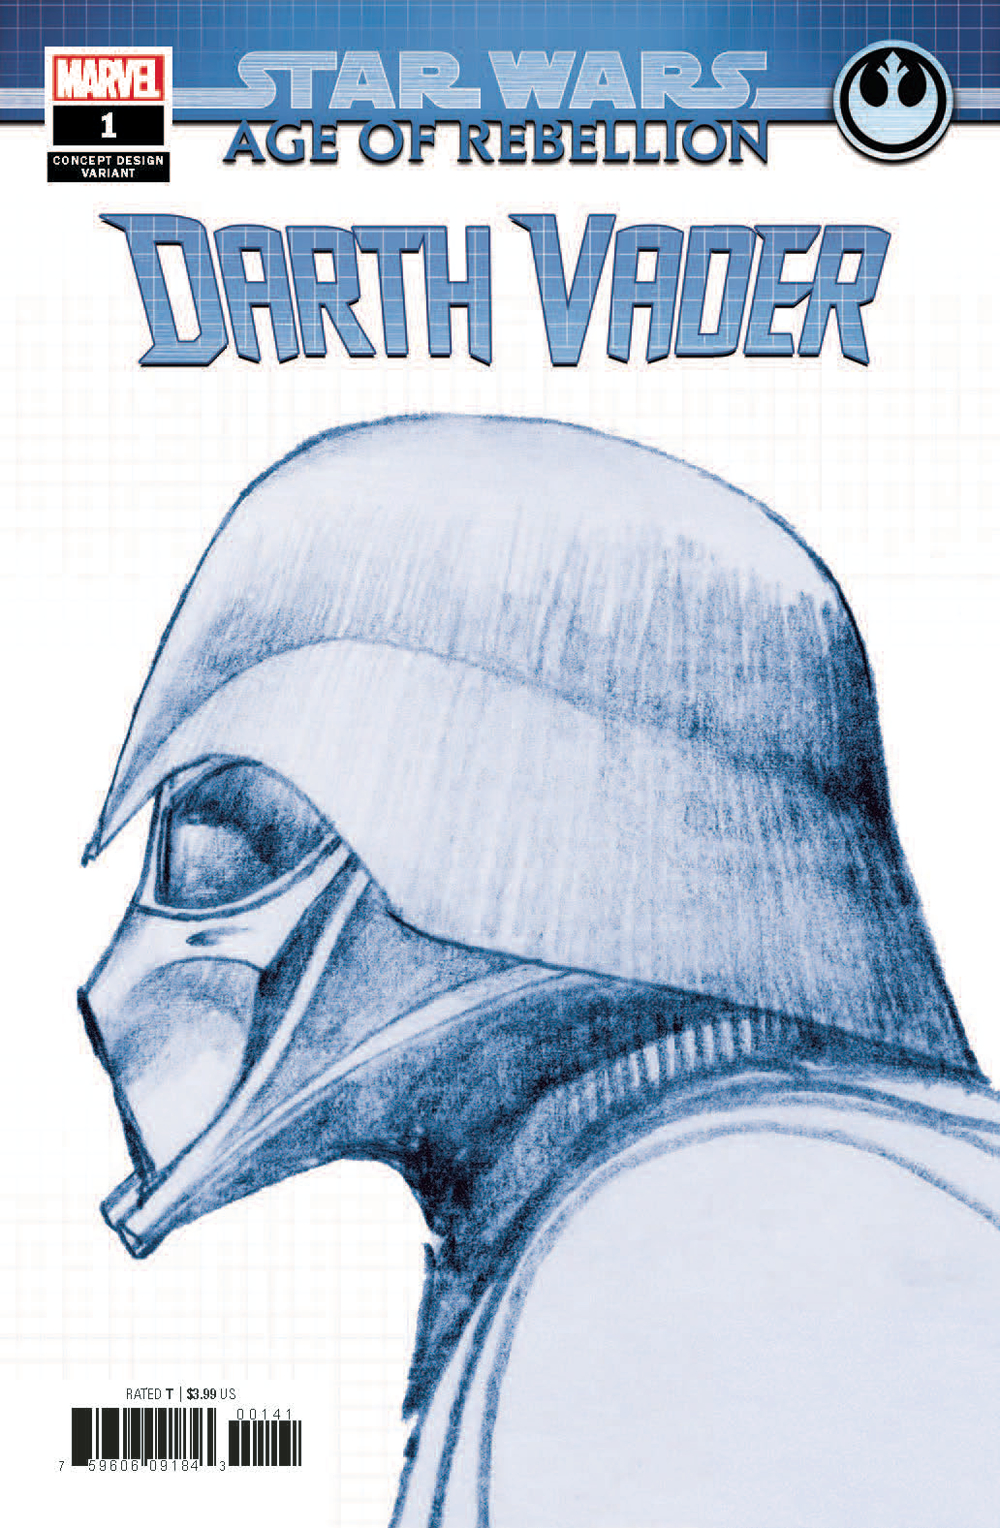 STAR WARS AOR DARTH VADER #1 CONCEPT VAR